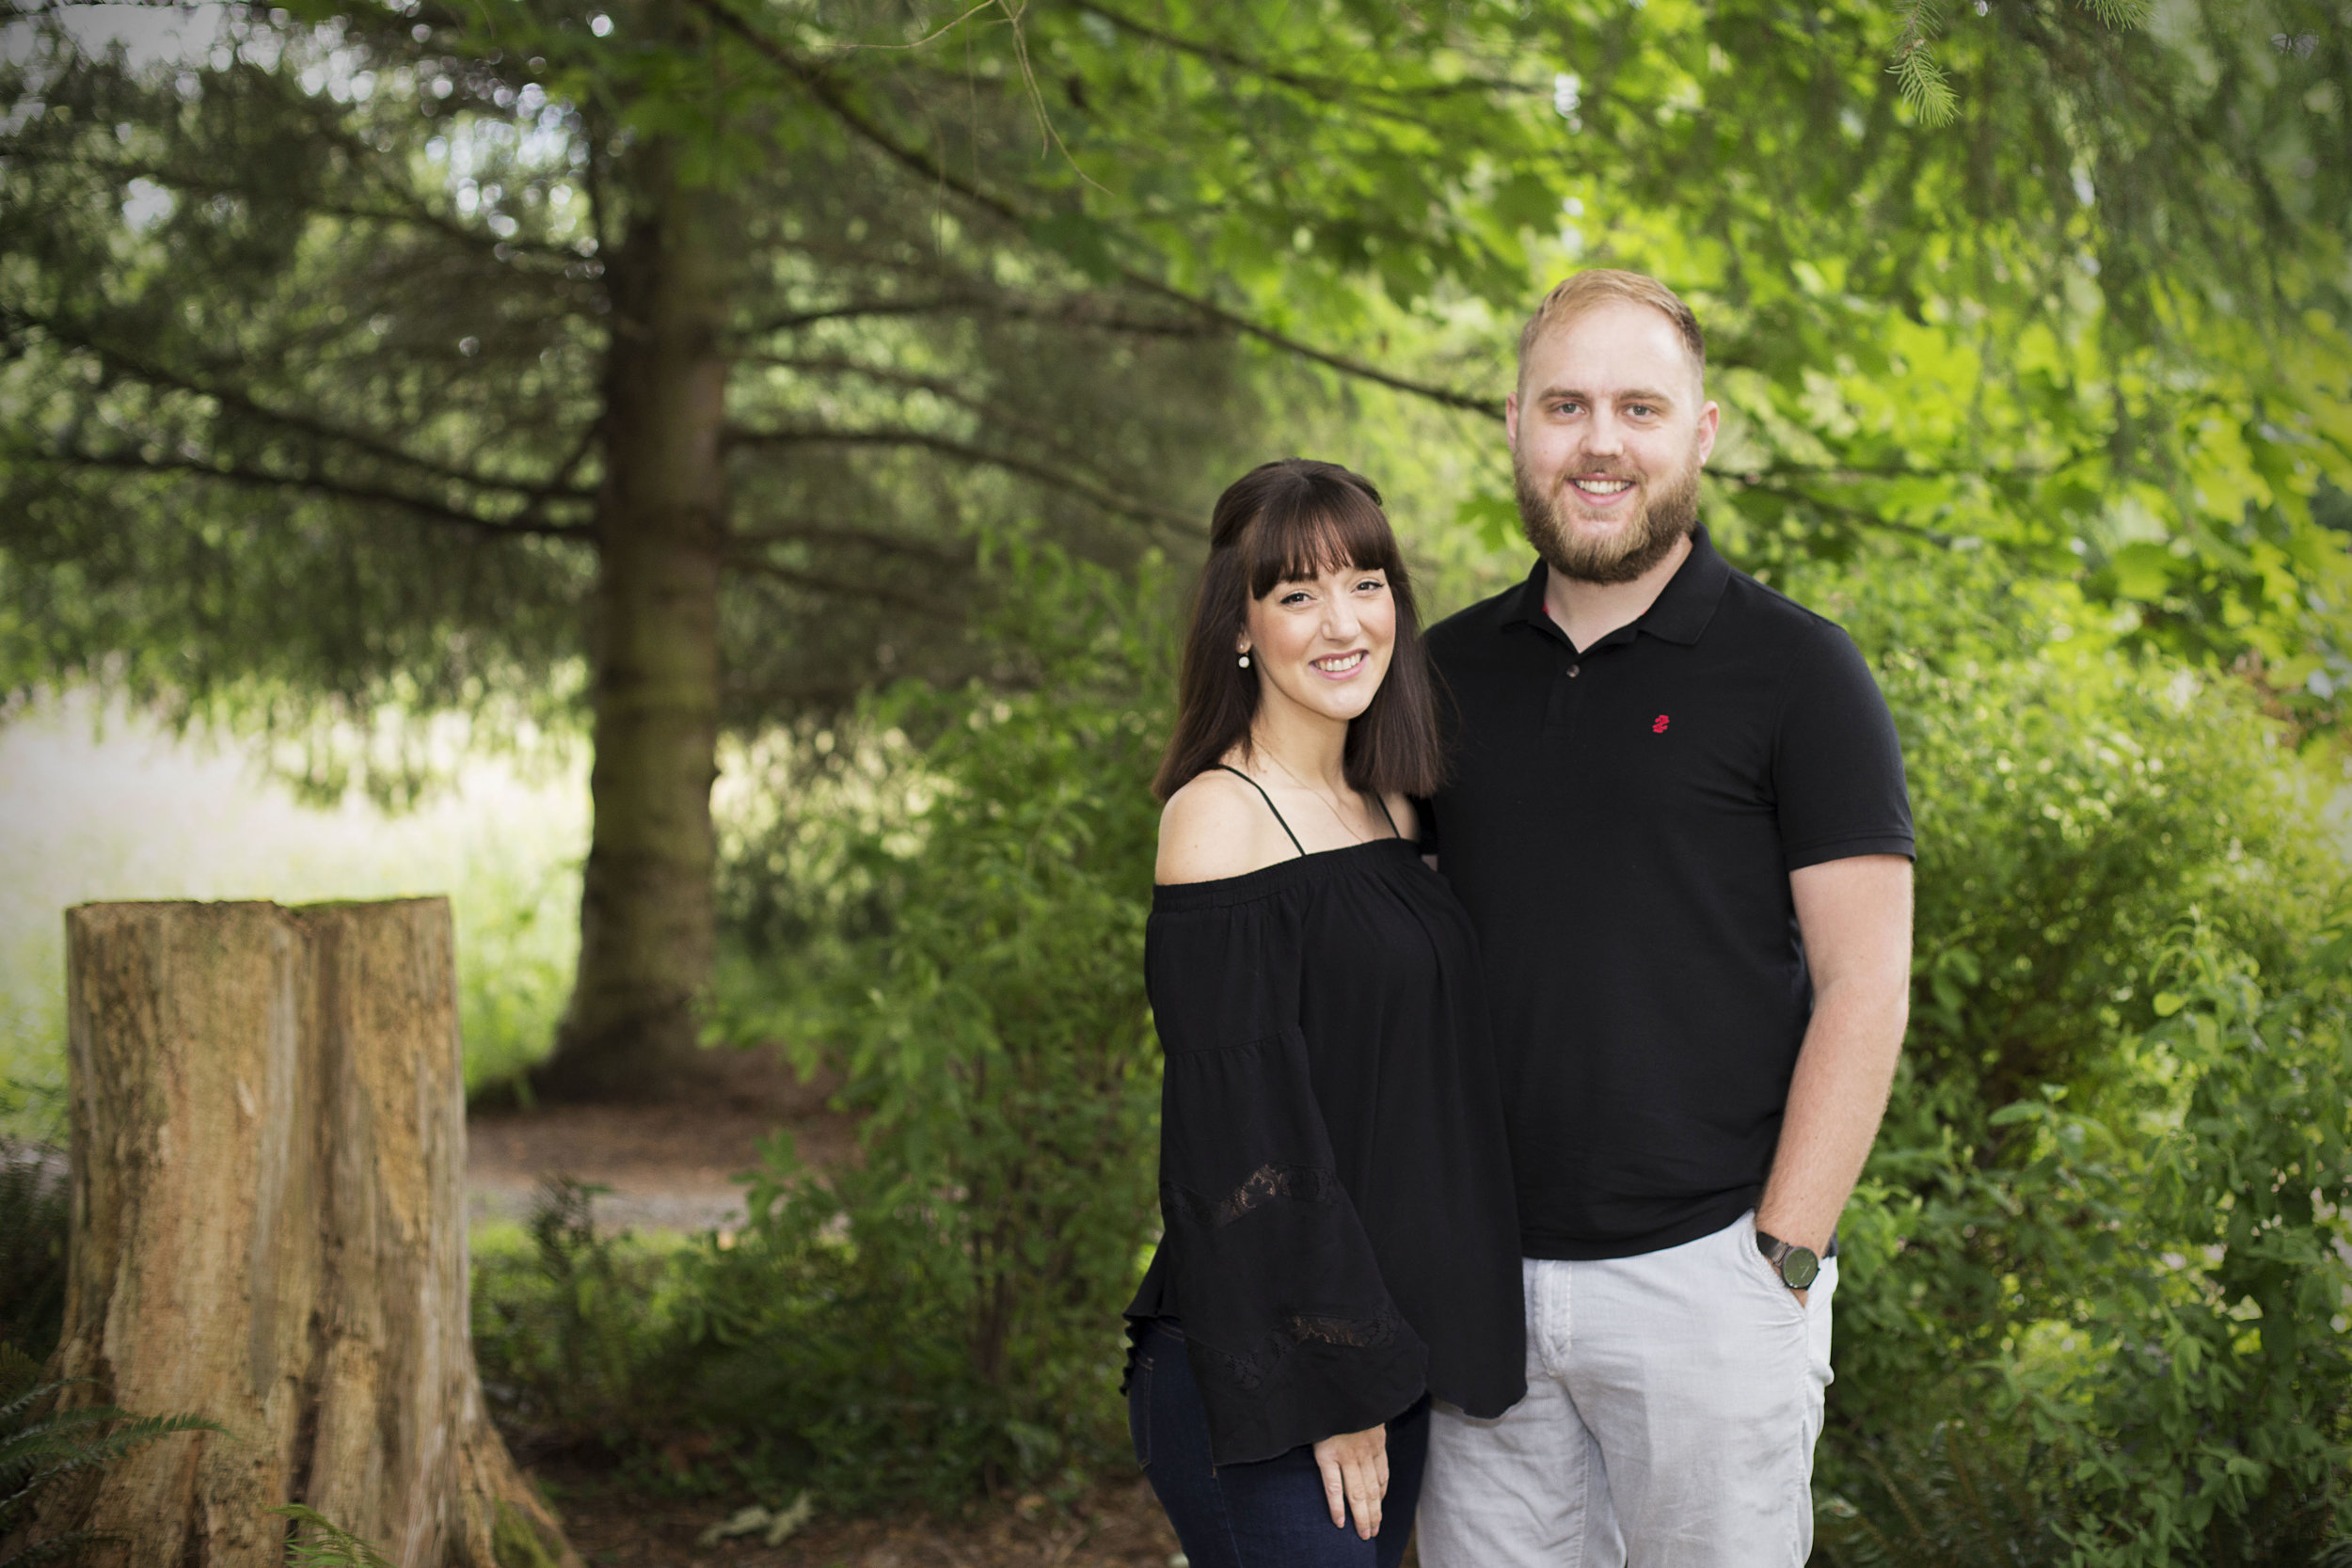 Andrew and Kimberly White - founders/owners of AWSOM.